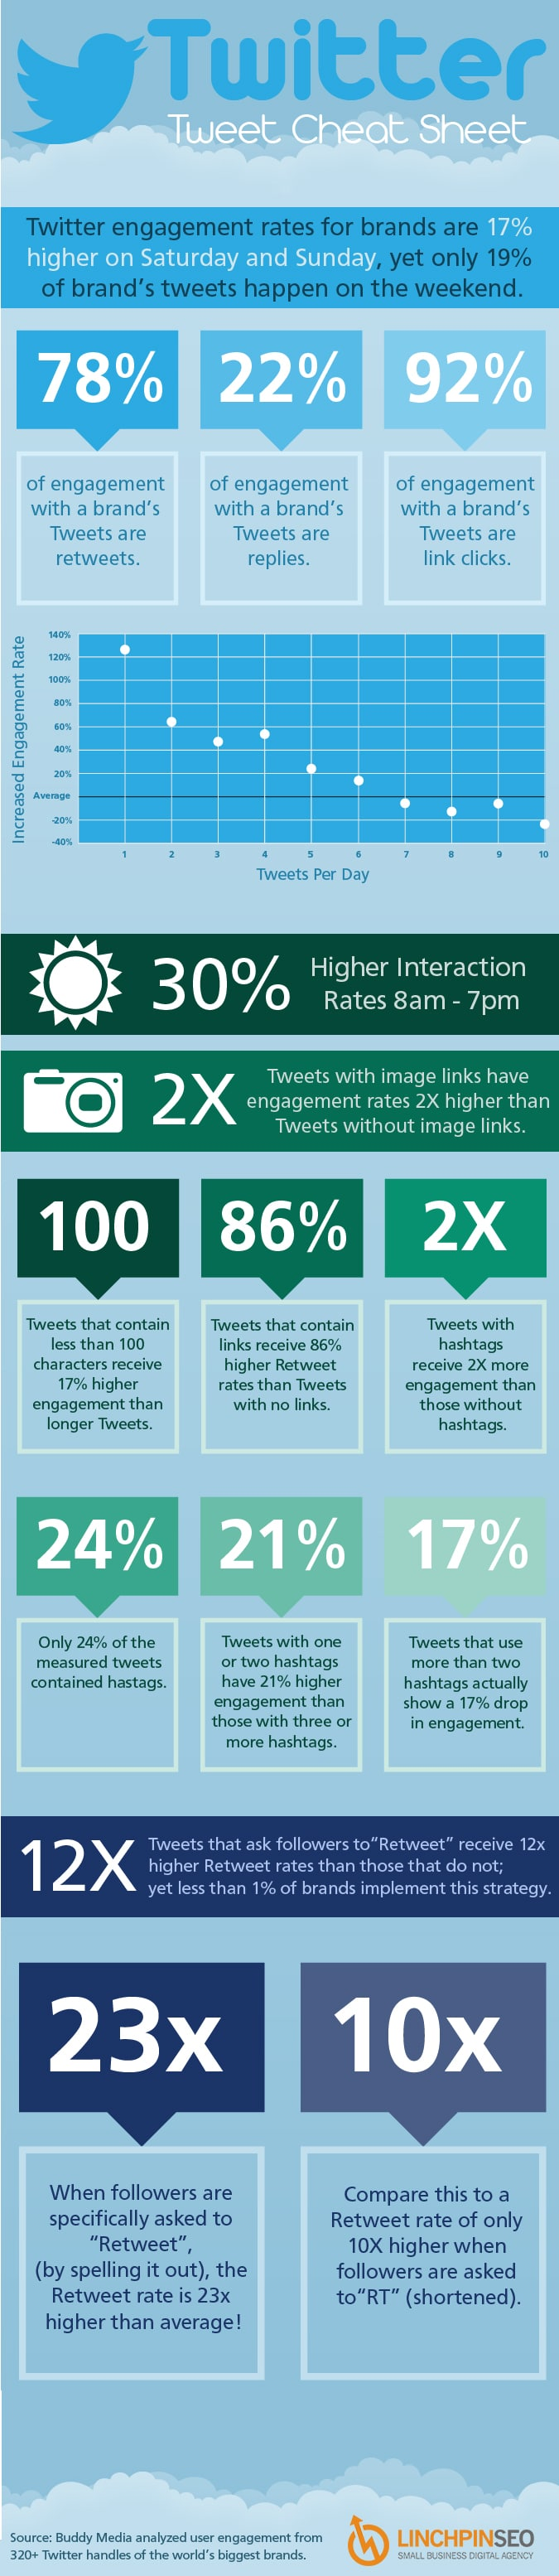 increase-twitter-engagement-rate-infographic